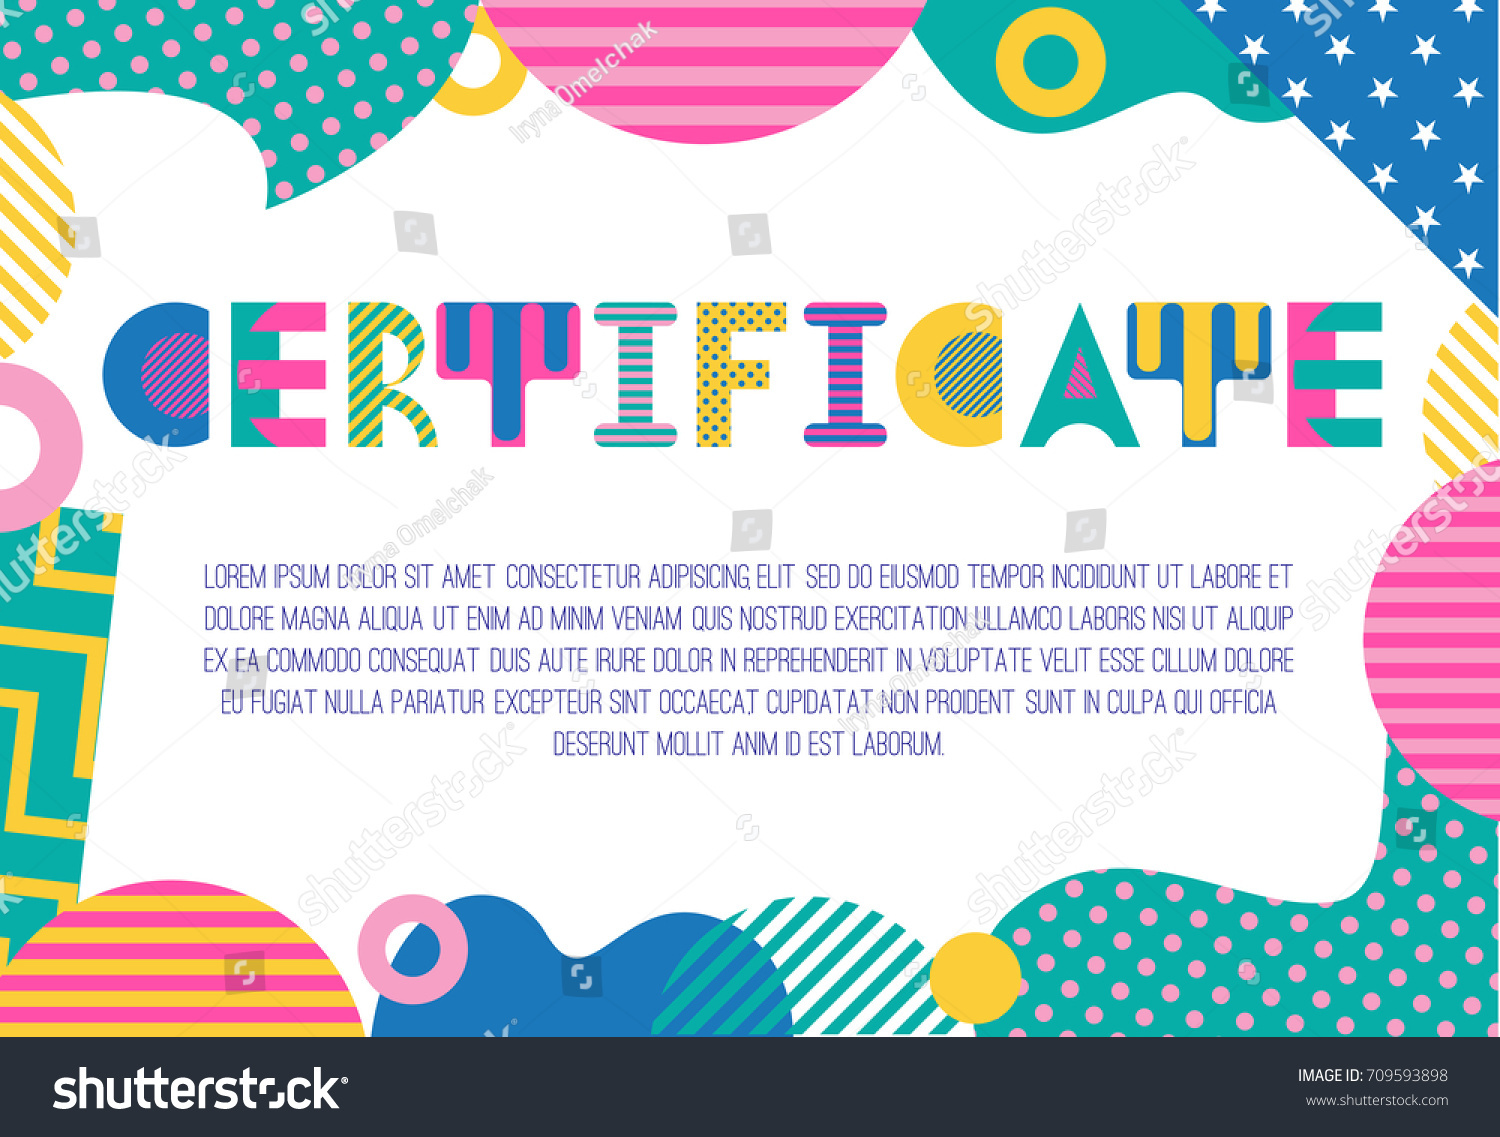 Certificate Trendy Geometric Font Memphis Style Stock Vector